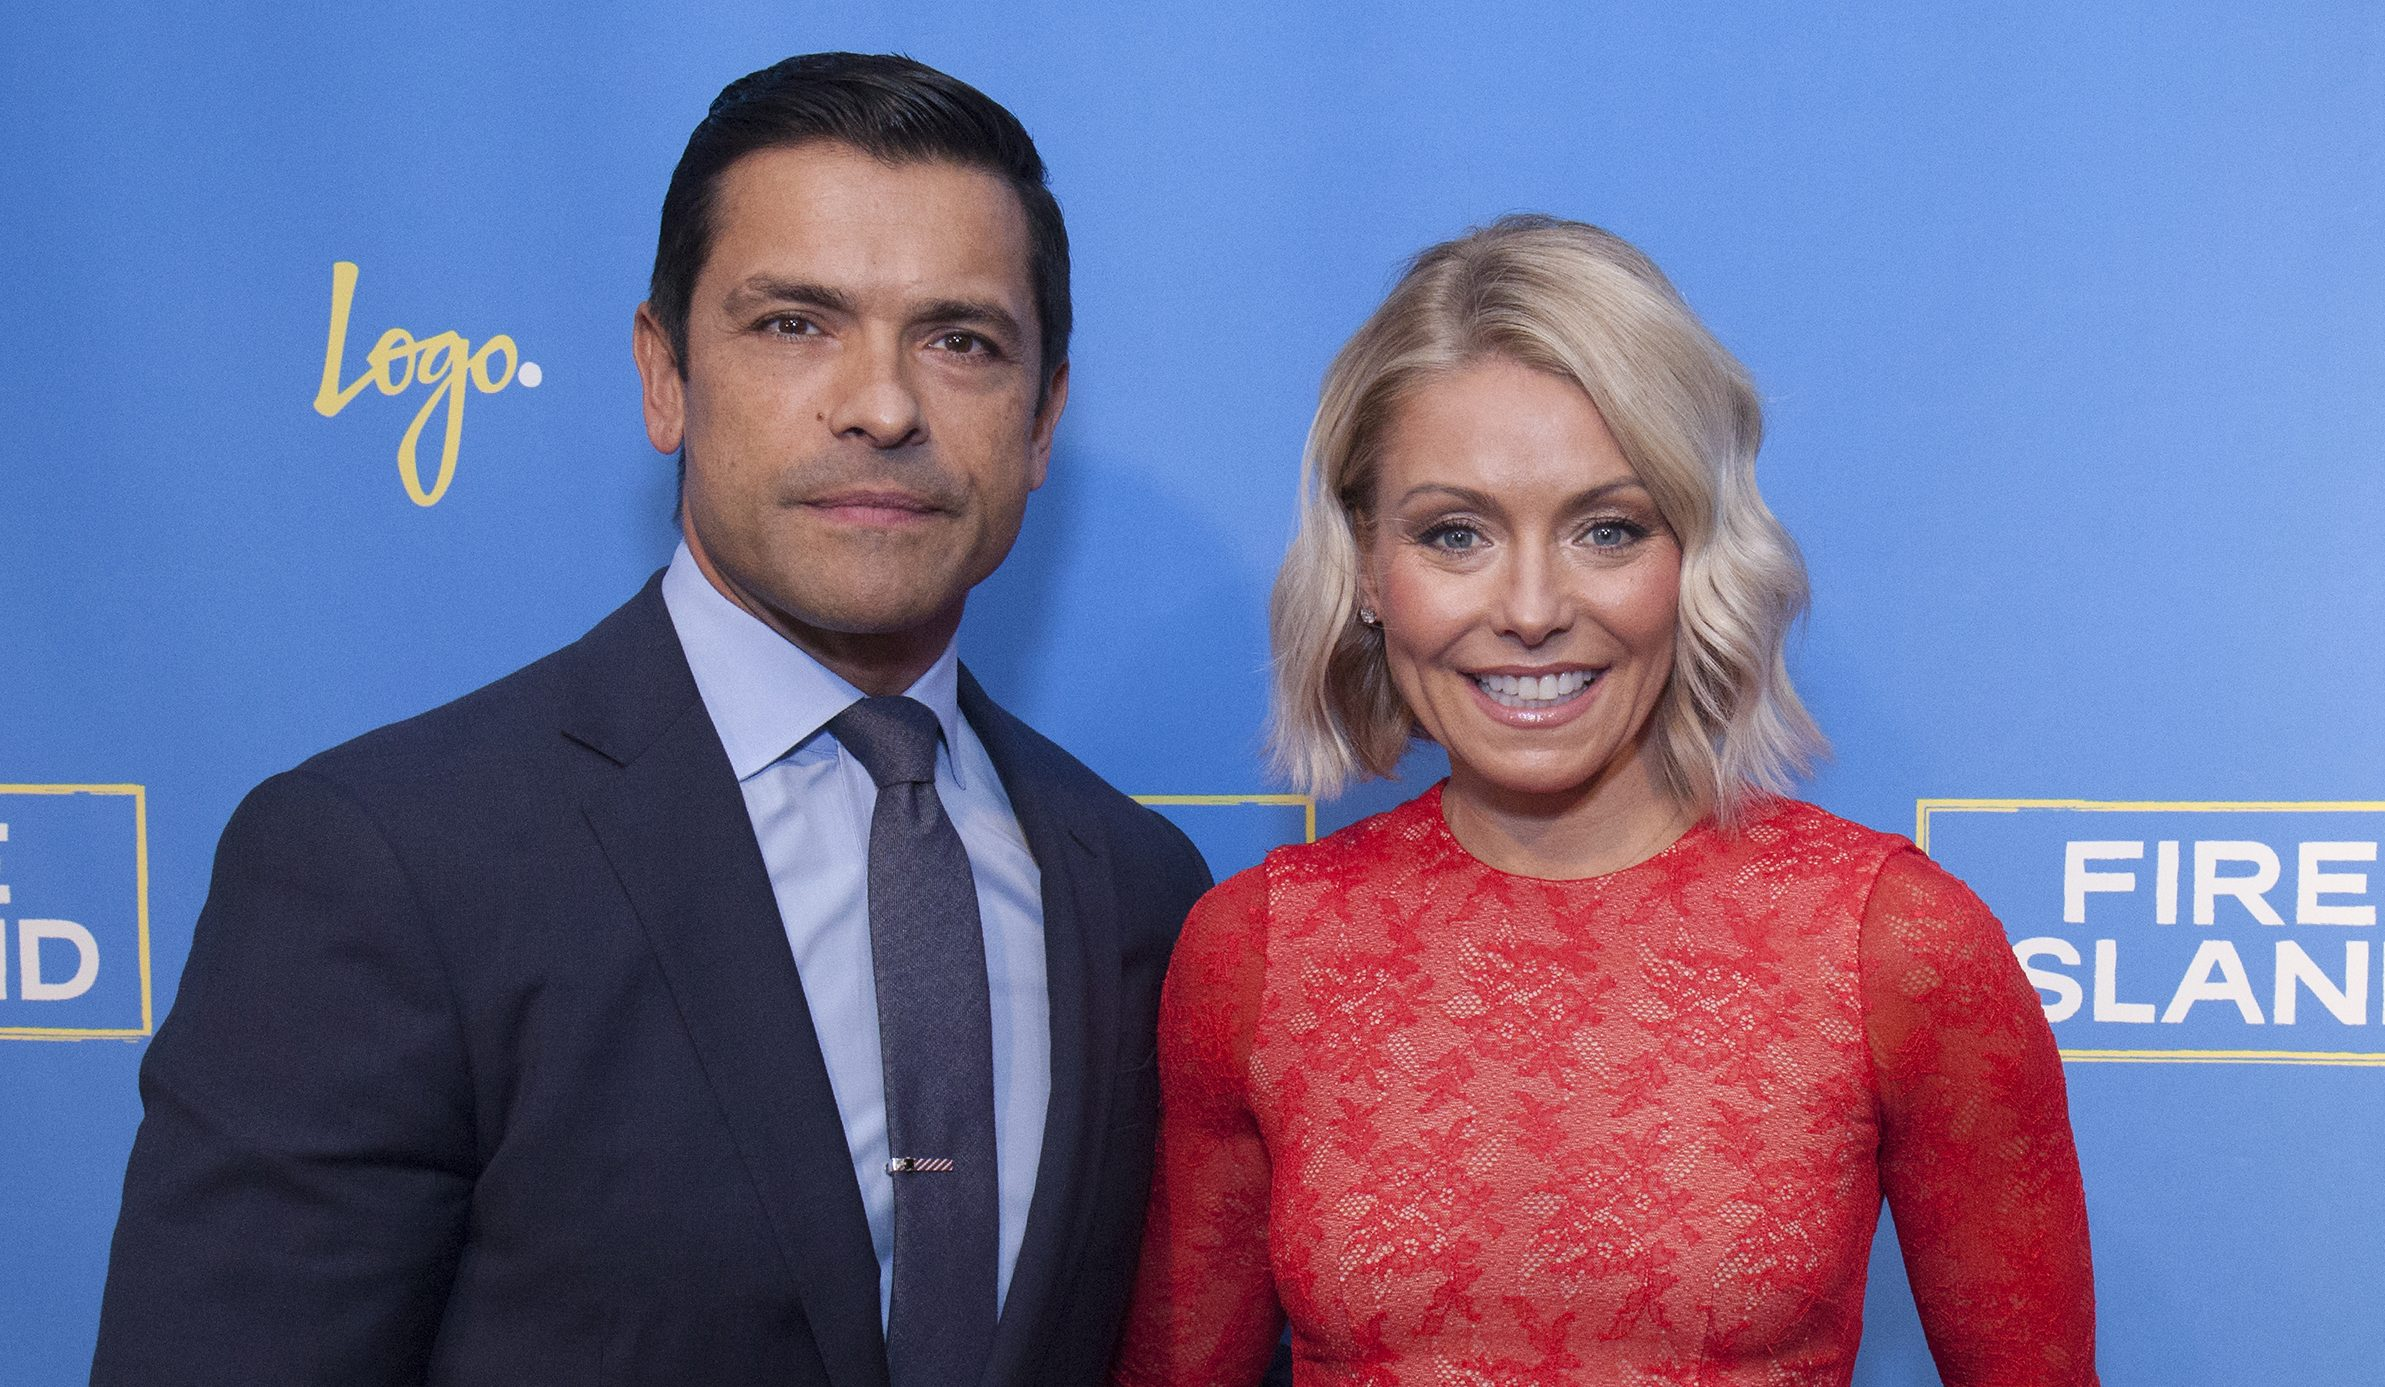 Mark Consuelos & Kelly Ripa Are Developing a Mexican-American Sitcom for ABC